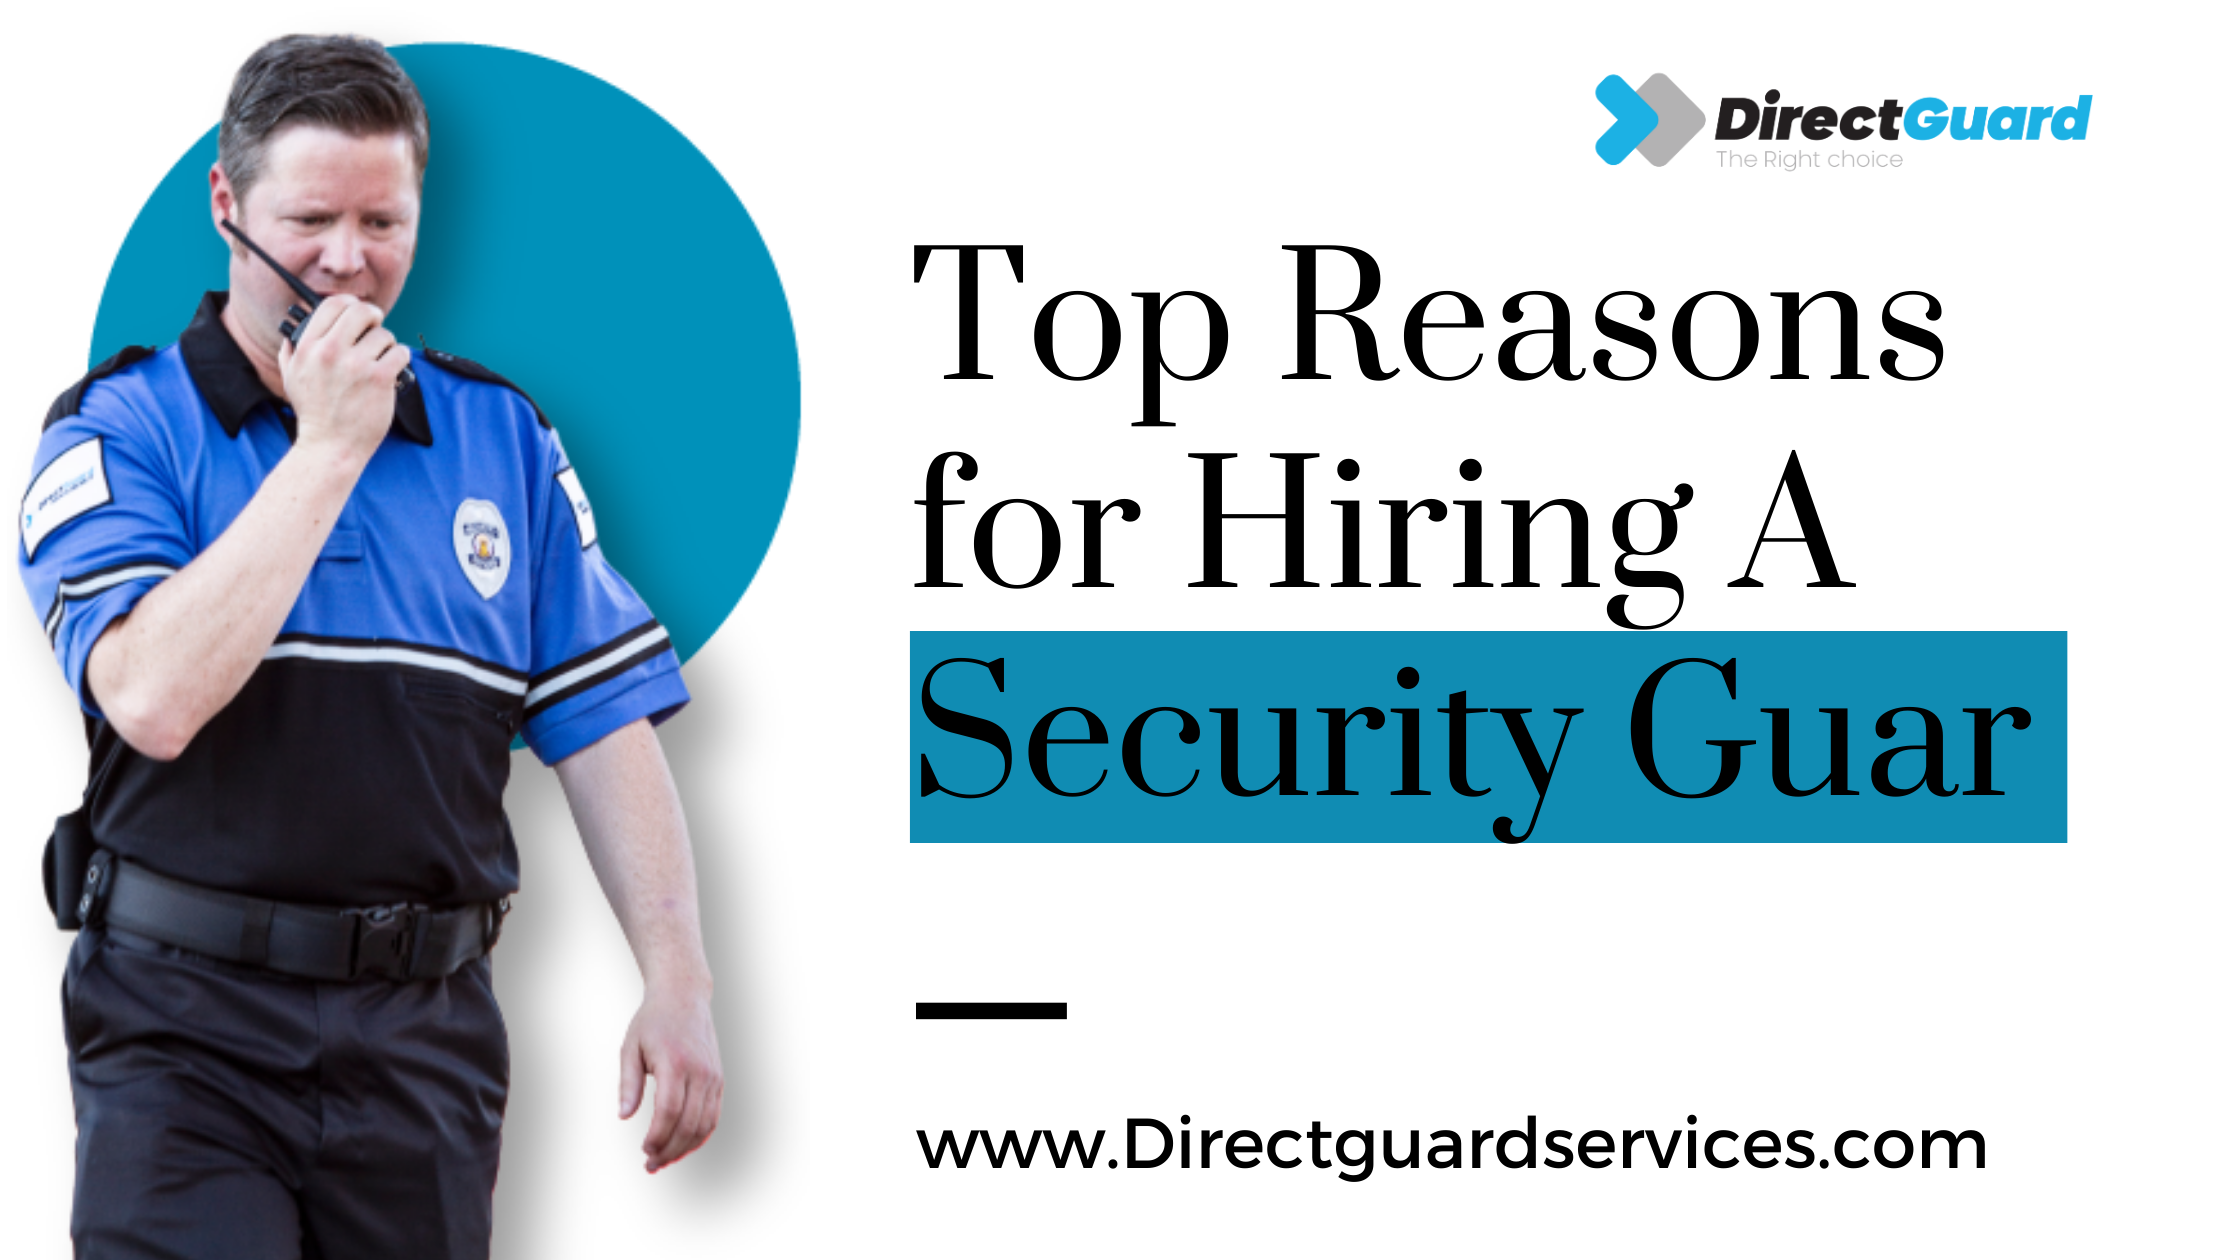 Top Reasons of Hiring A Security Guard